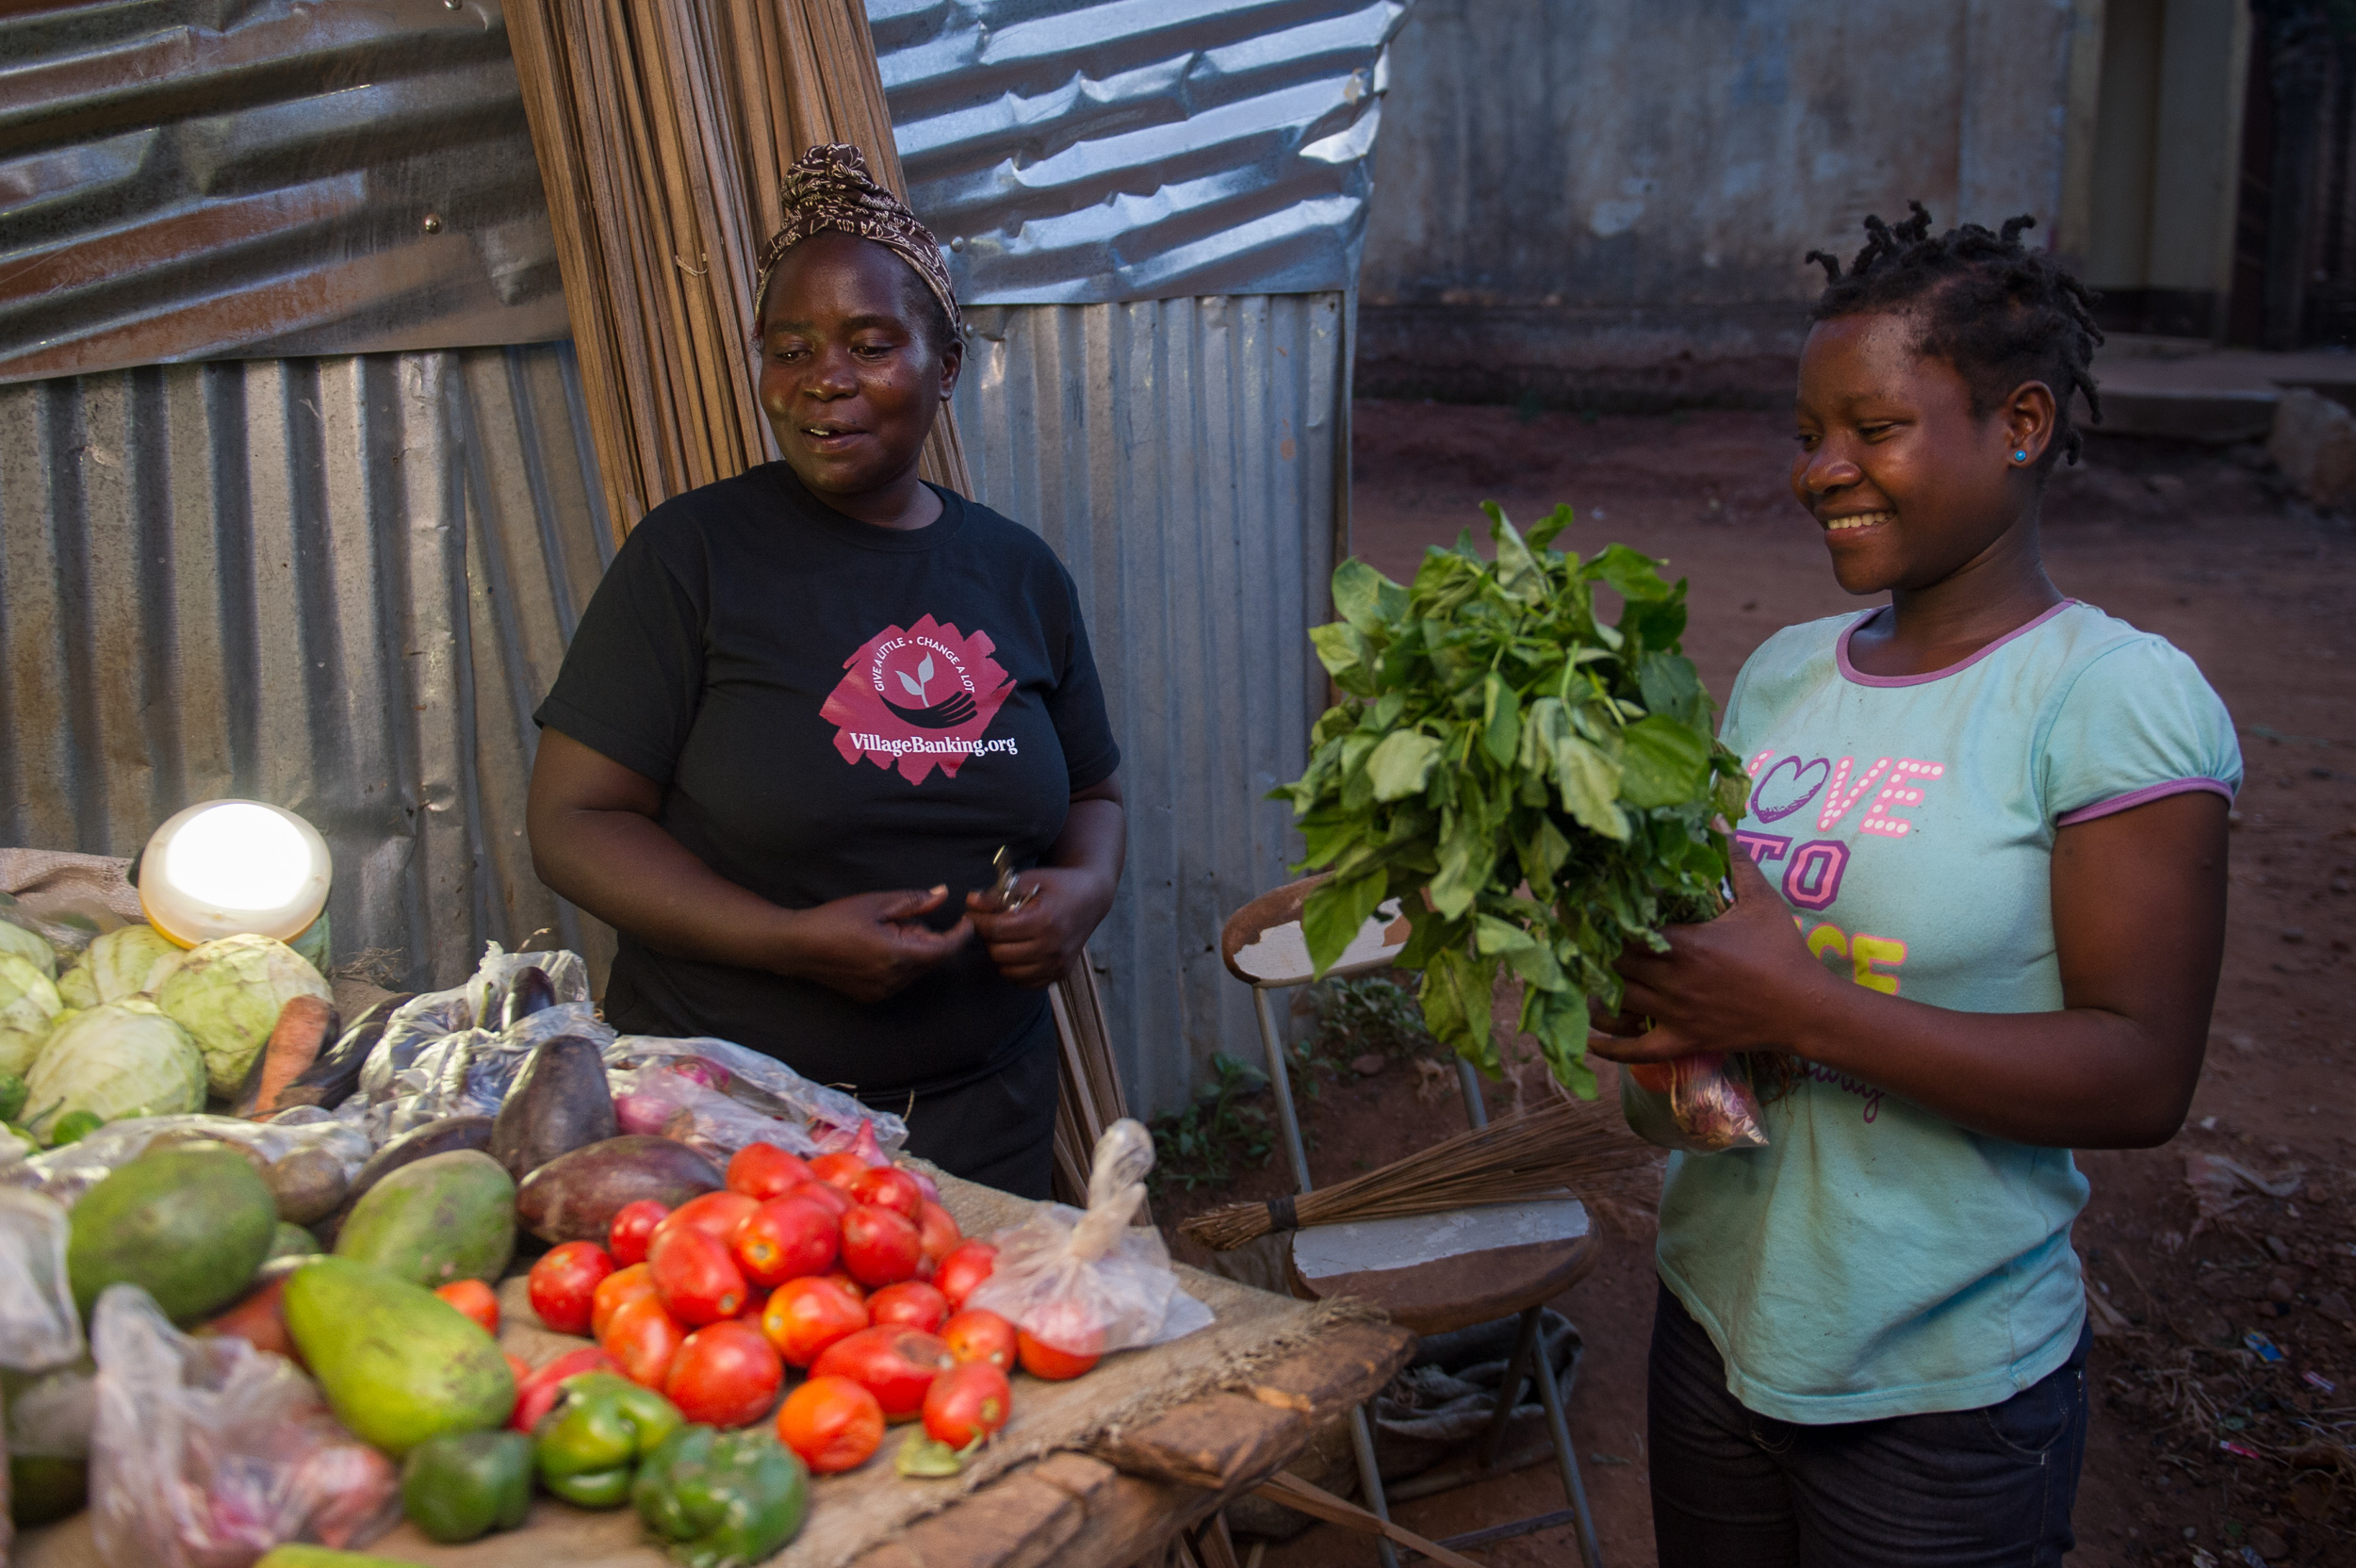 Now that she has the solar lanterns, Josephine is able to stay open later and serve more customers.